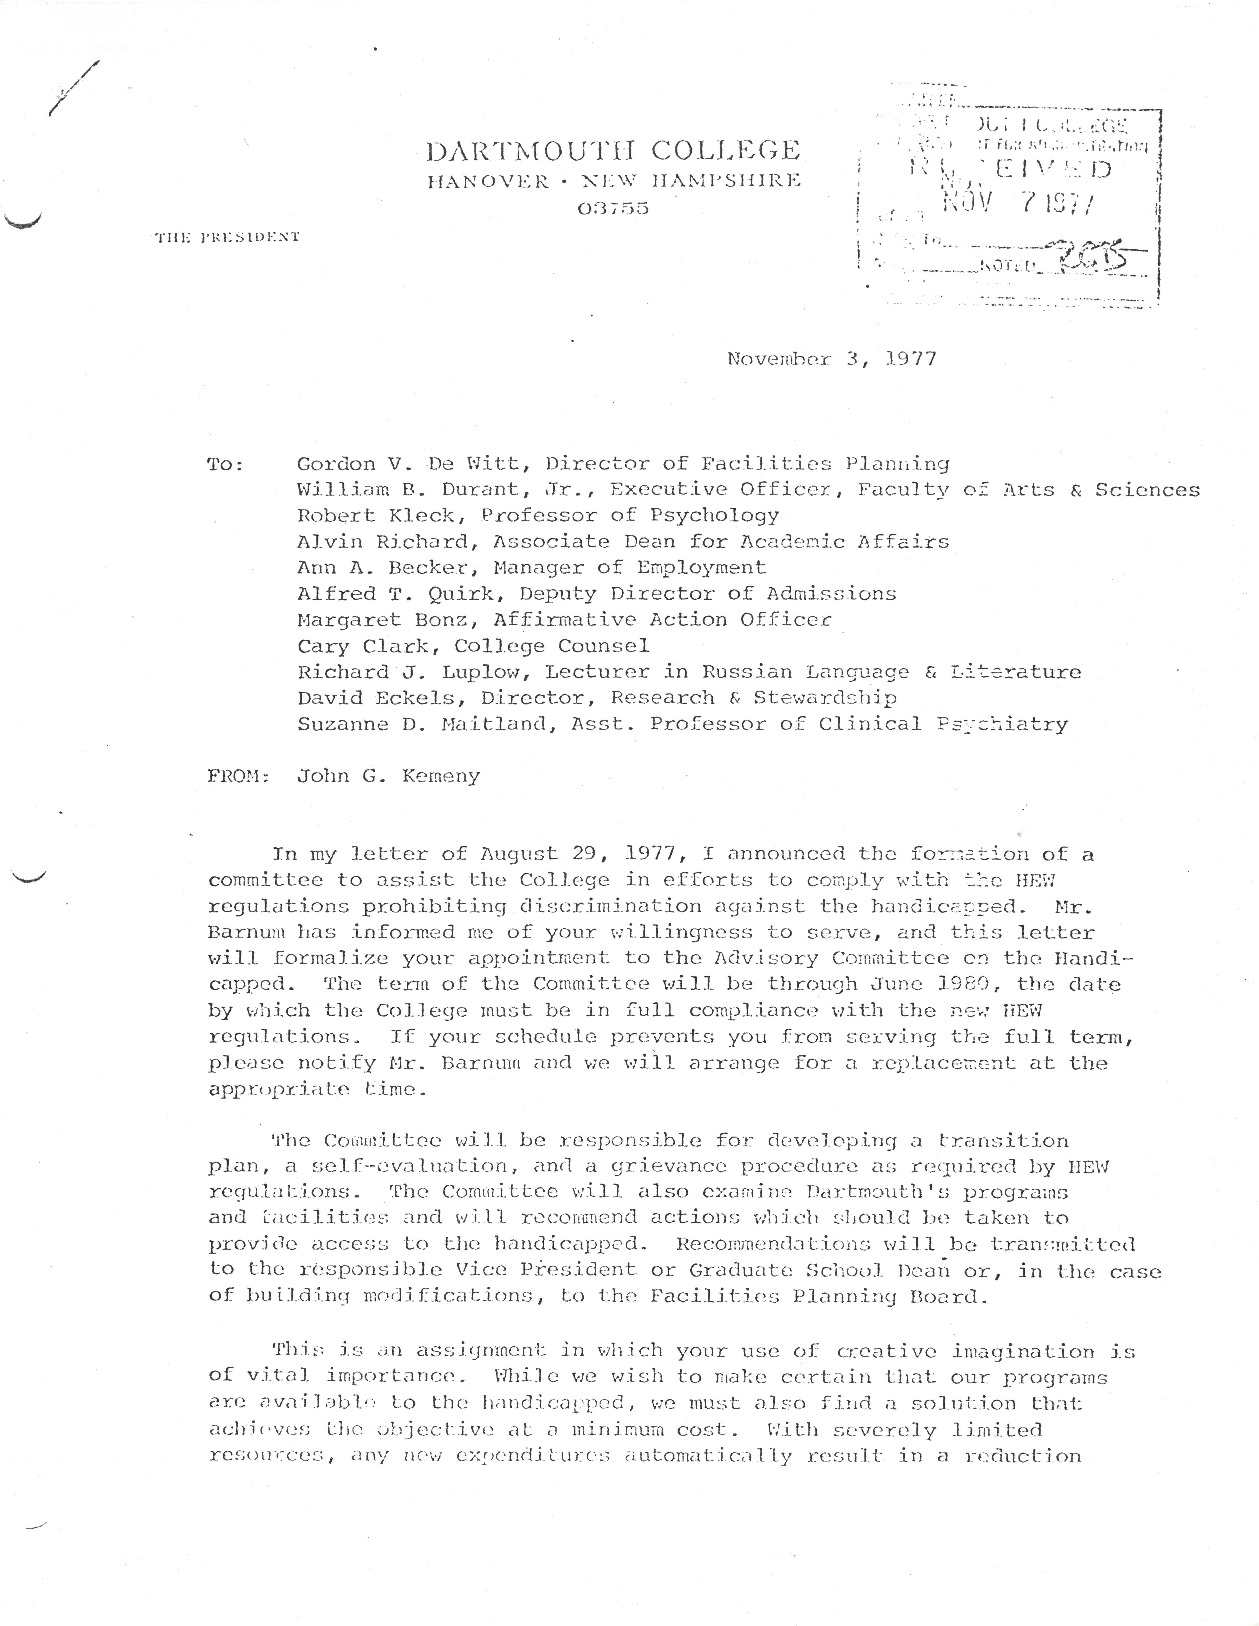 A memo sent to the appointed members of the Advisory Committee on the Handicapped that instructs the Committee to develop a transition plan, self-evaluation plan, and grievance procedure in line with Health, Education, and Welfare (HEW) regulations. President Kemeny makes note of the difficult task facing the Committee, and recommends thinking creatively in order to make accommodations at minimal cost. He also mentions that the College has accommodated handicapped students and employees in the past.